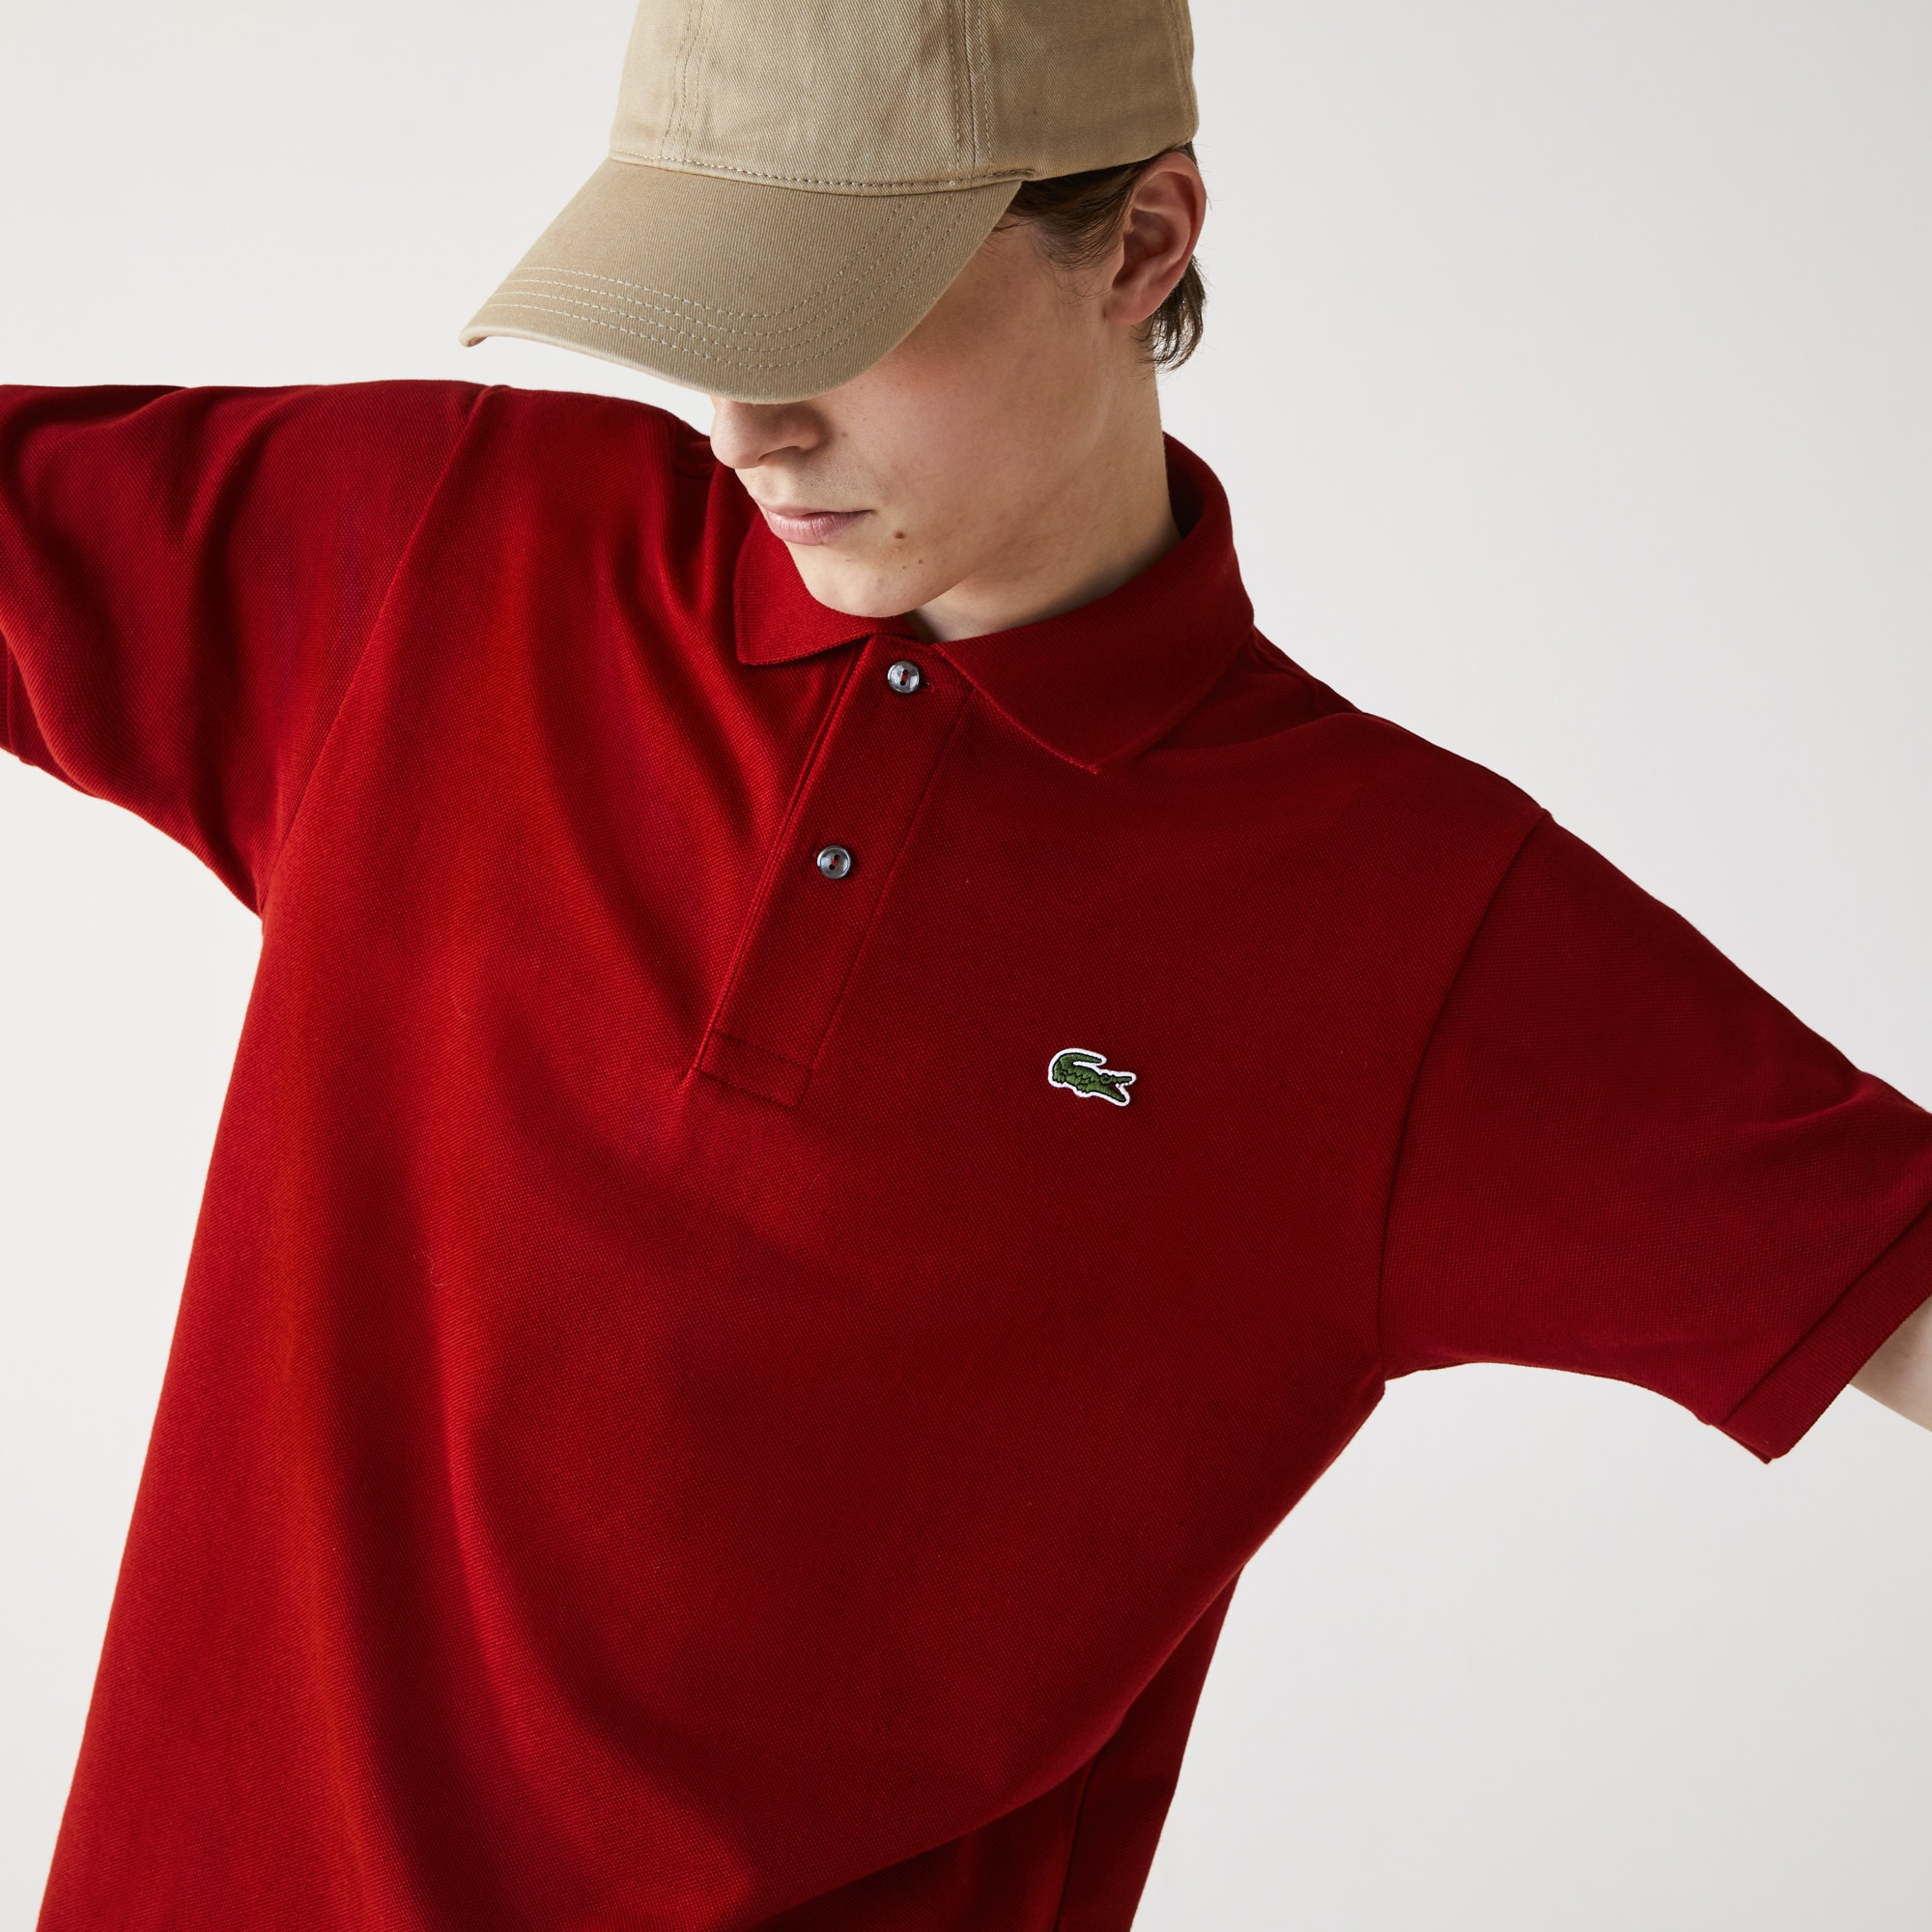 Lacoste Mens Classic Fit L.12.12 Polo Shirt